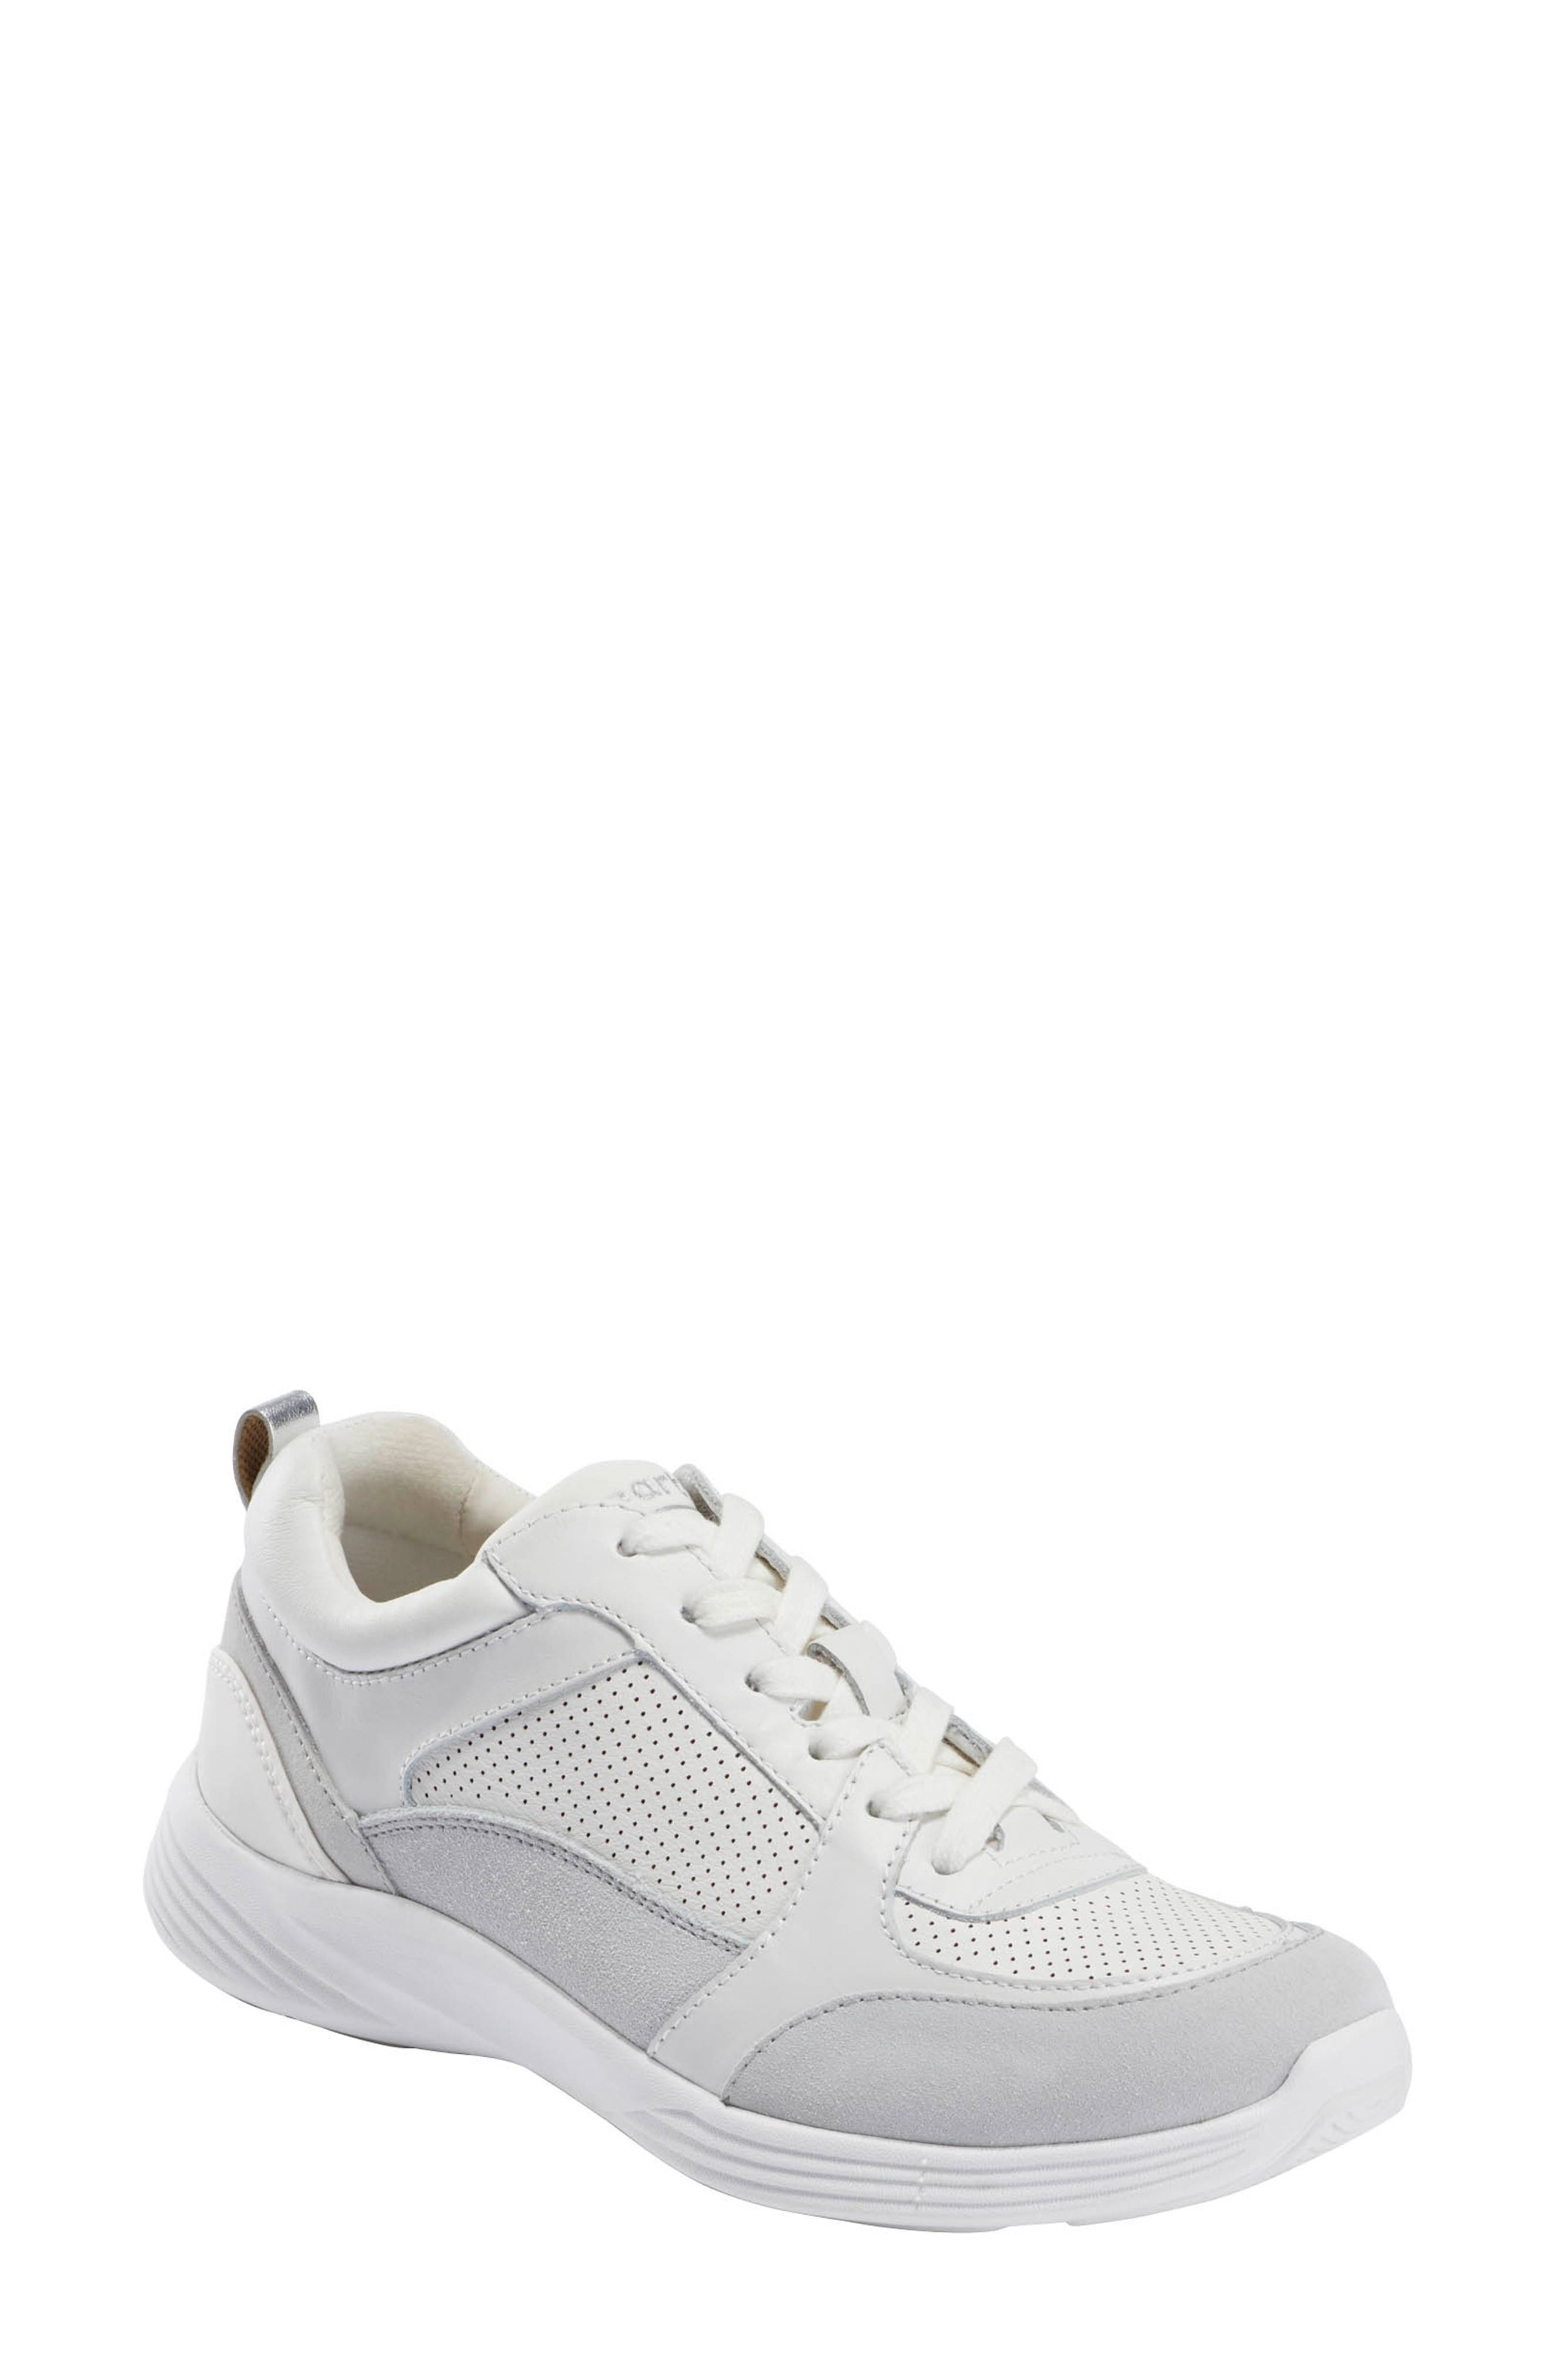 A foam-cushioned insole with shock-absorbing support defines a comfort-focused sneaker in a versatile, monochrome design for effortless, everyday style. Style Name: Earth Scenic Vapor Sneaker (Women). Style Number: 6001349. Available in stores.